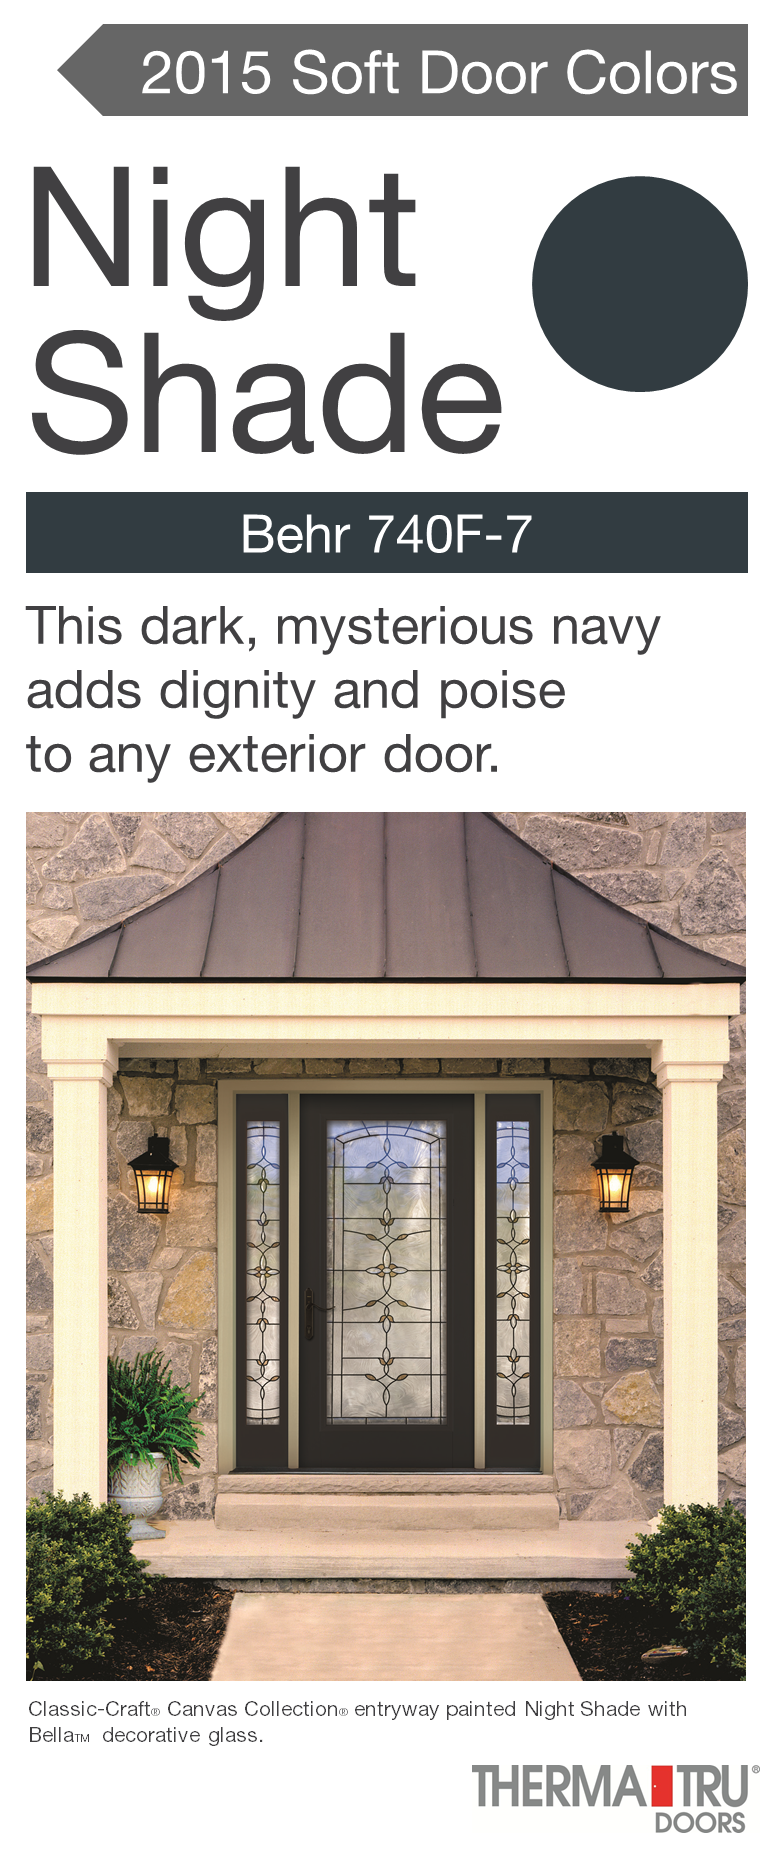 Classic Craft Canvas Collection Fiberglass Door Painted Night Shade